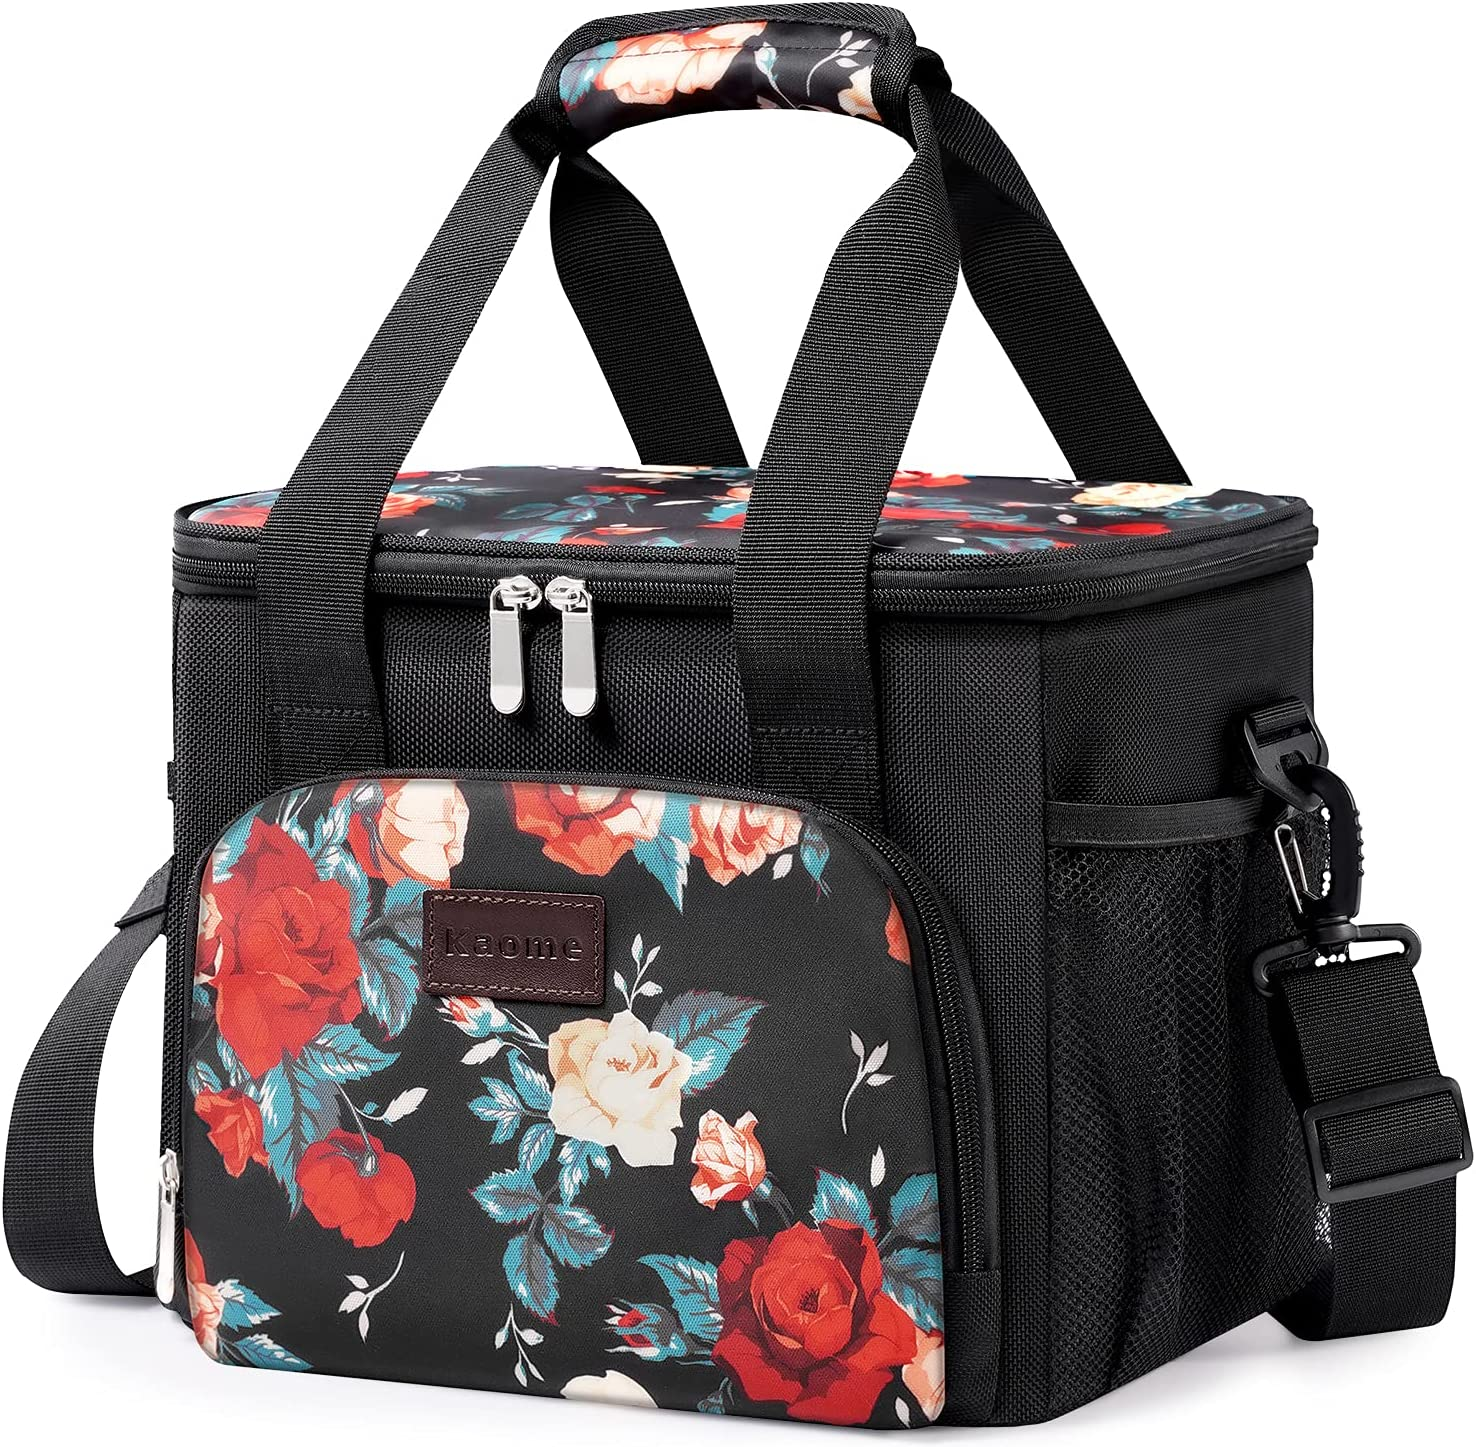 Large Lunch Bags for Women/Men 15L (24-Can), Kaome Insulated Lunch Box 100% Leakproof Cooler Bag for Office Work School Picnic Beach, with Adjustable Shoulder Strap-Floral